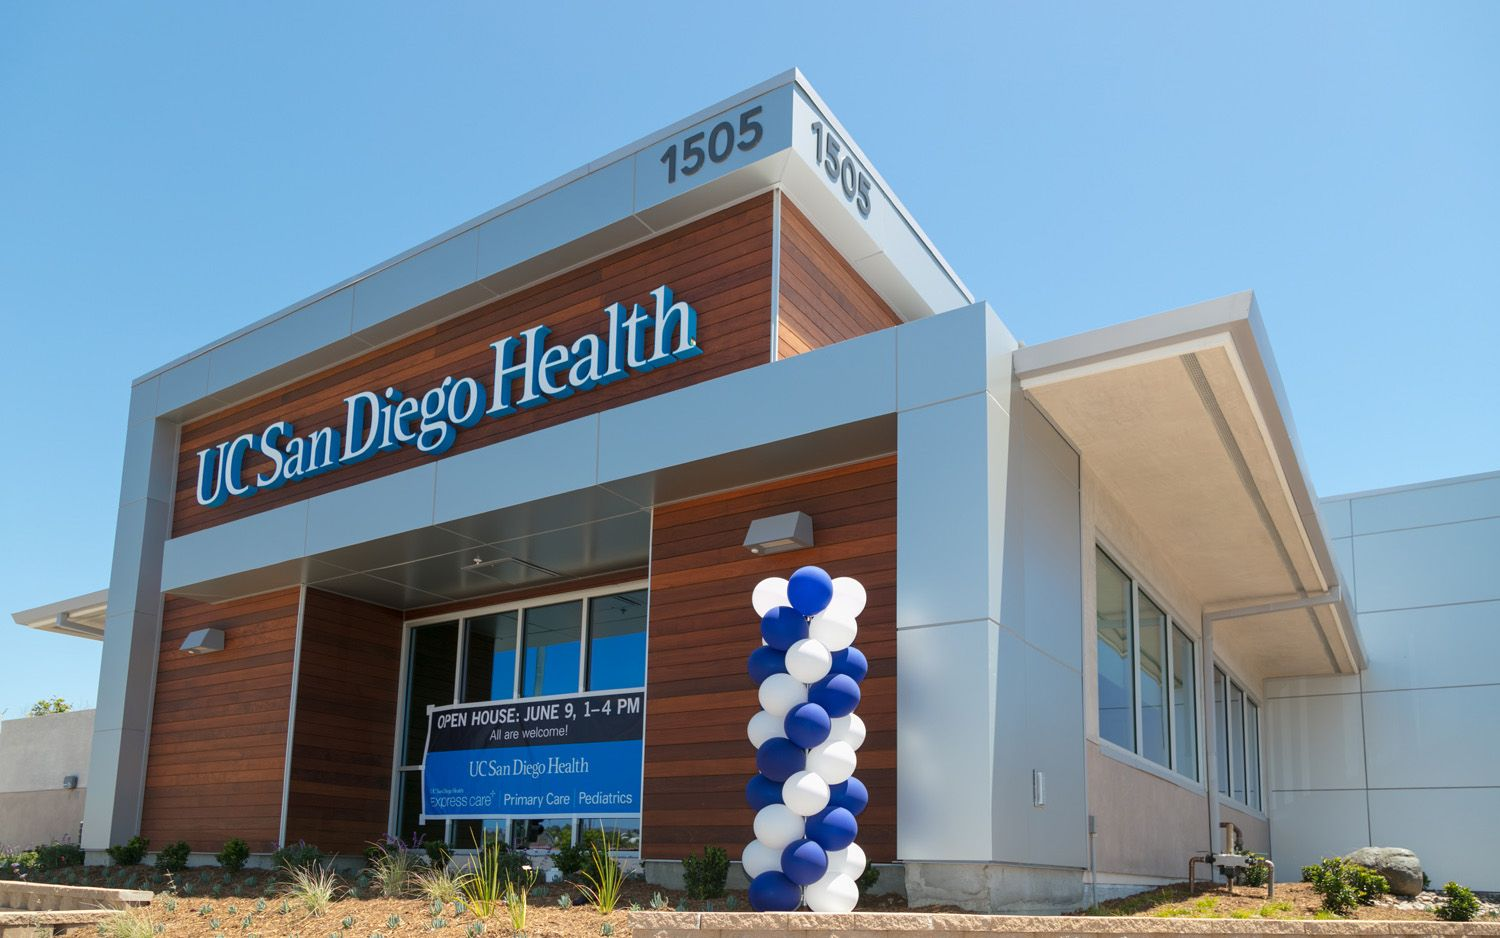 UC San Diego Health Expands North for Primary Care Options